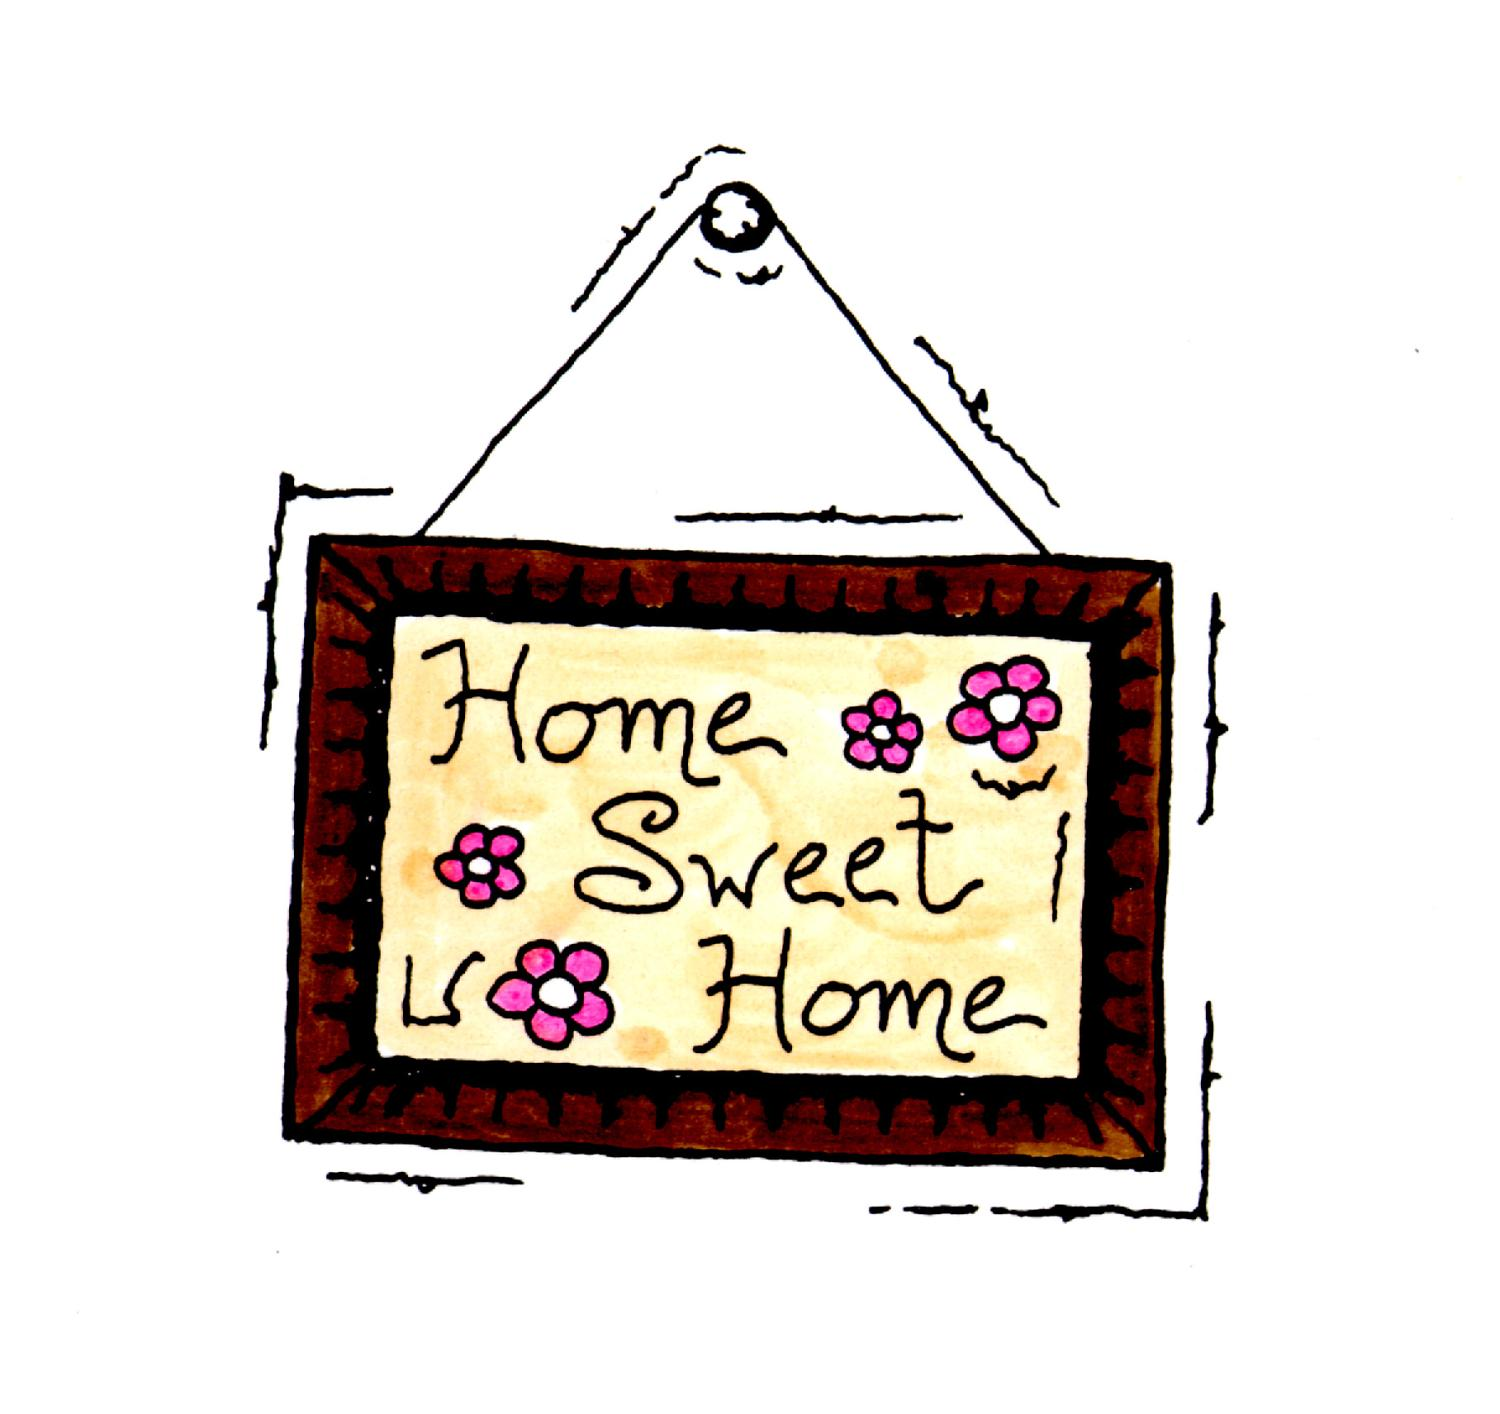 80727229_Copy_of_home_sweet_home.2451702